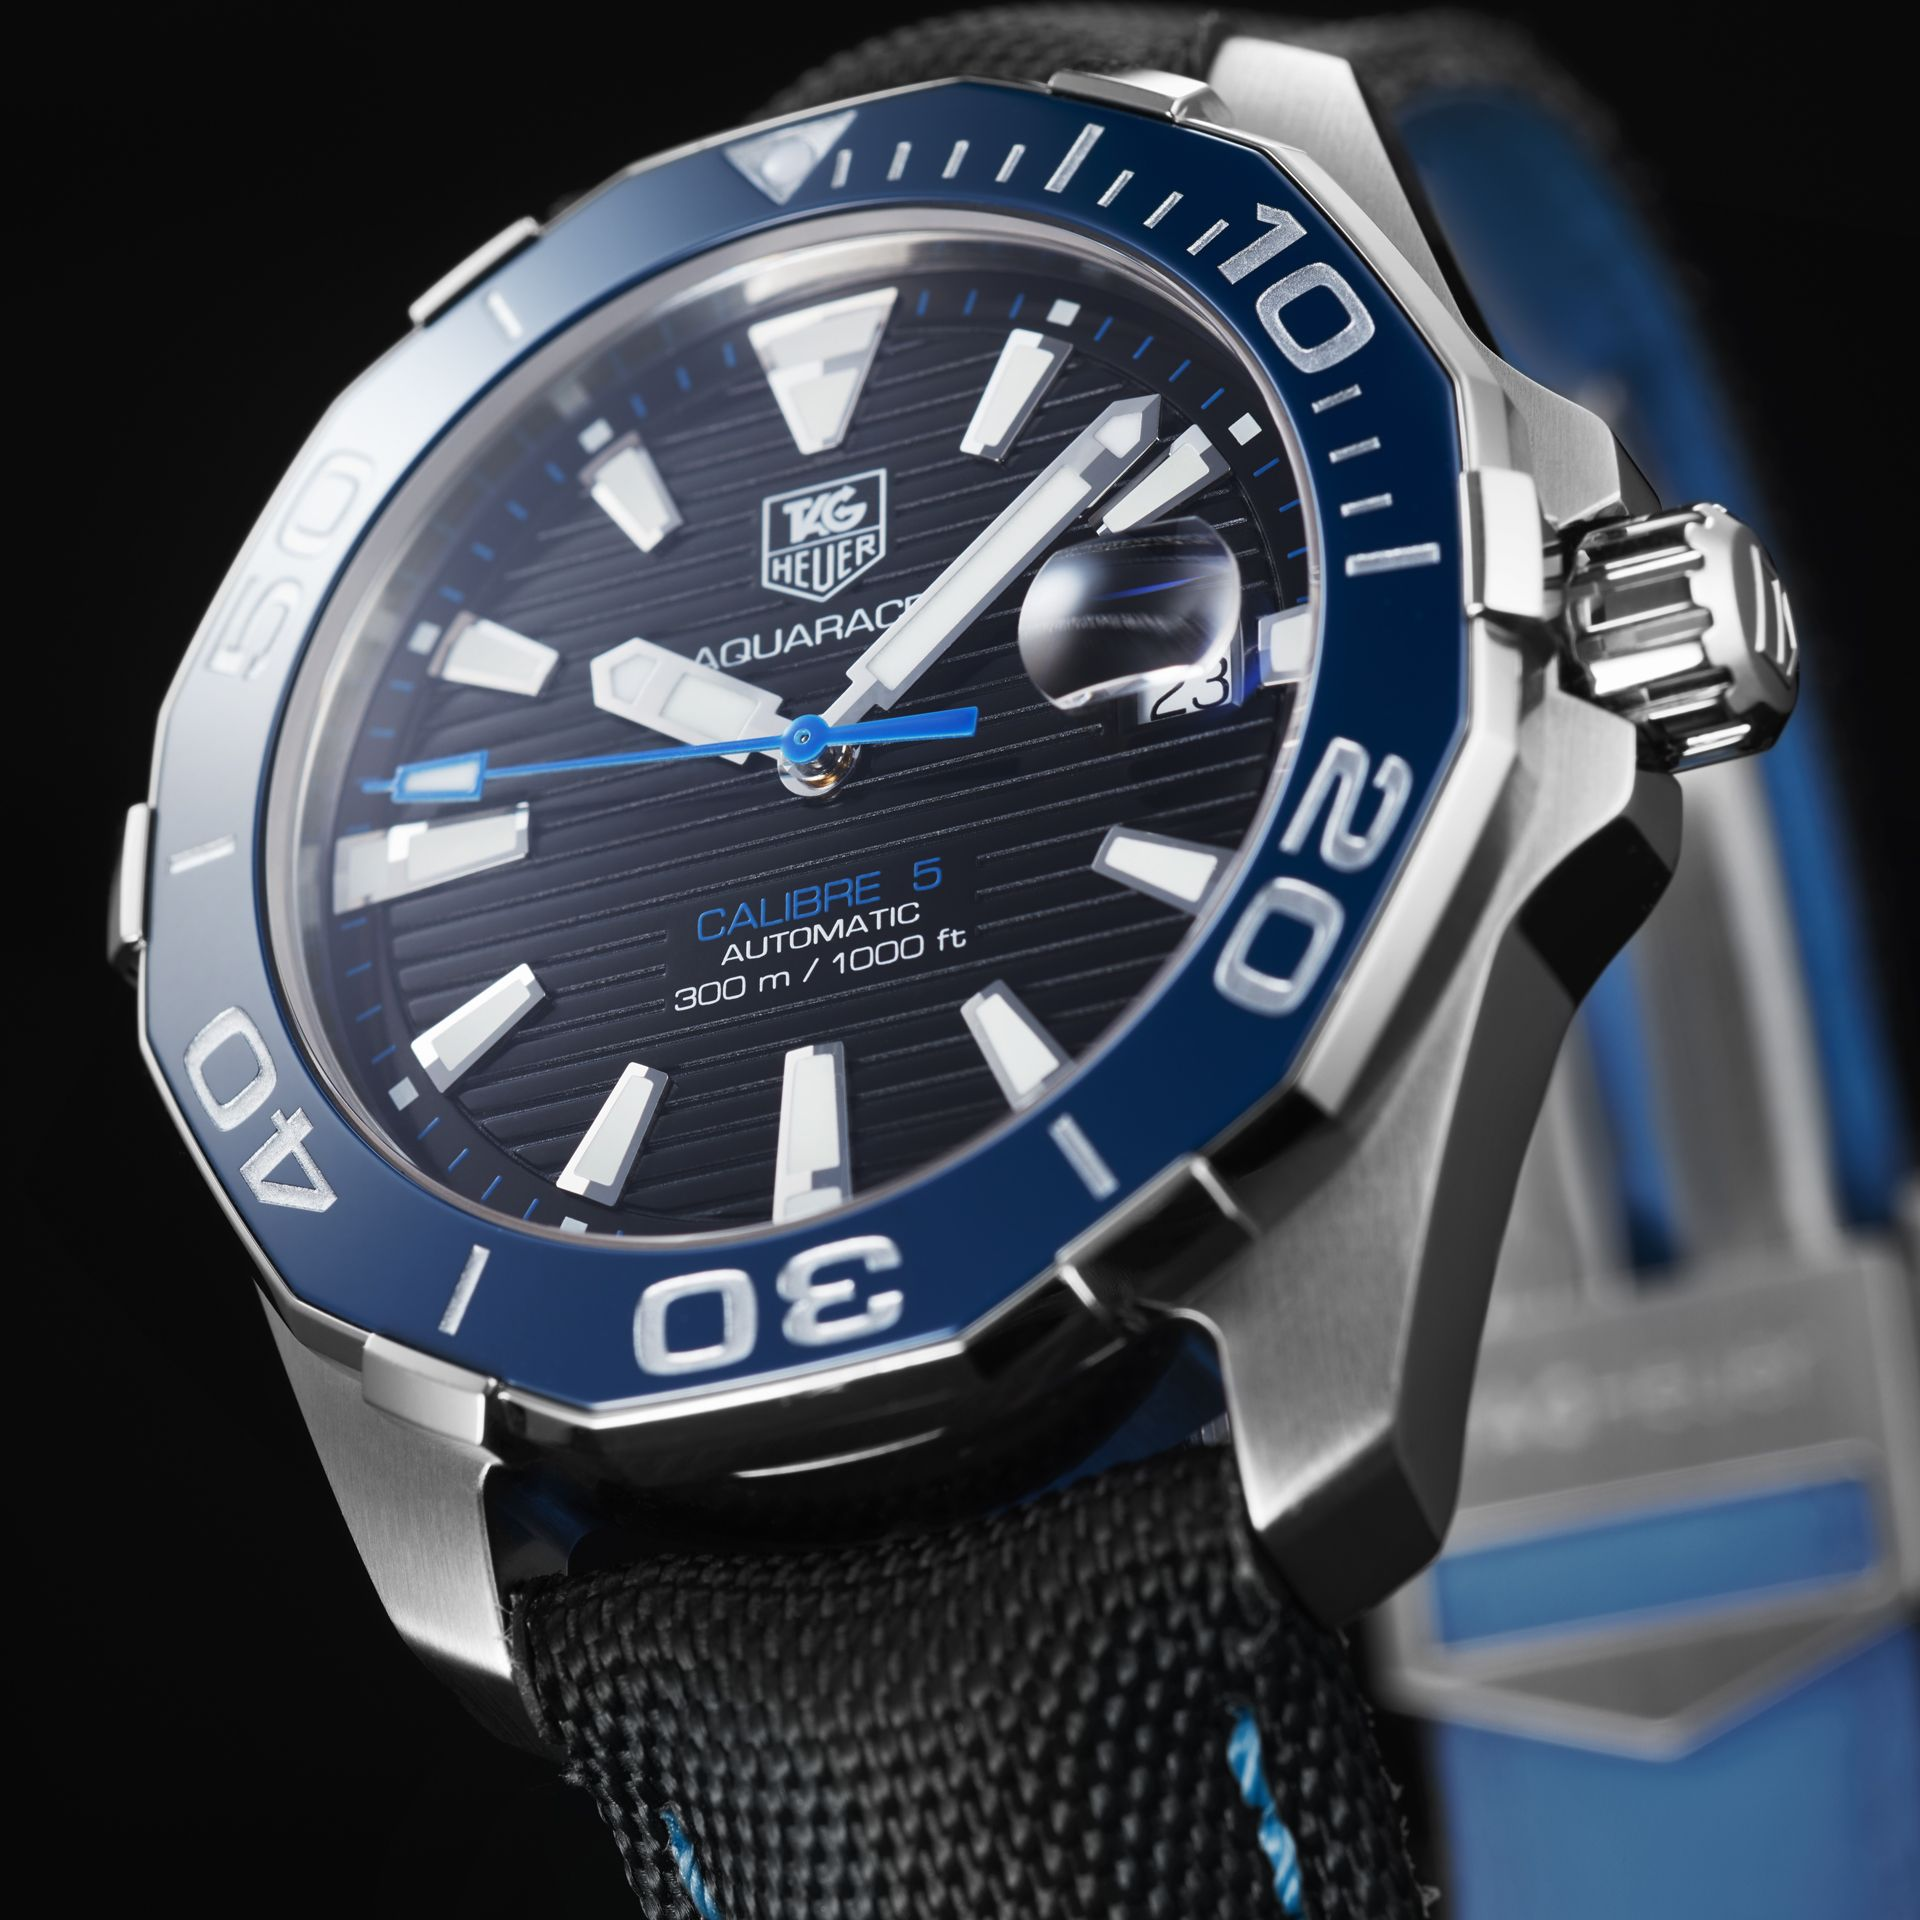 Discover the TAG Heuer Aquaracer Calibre 5 Automatic Watch ...